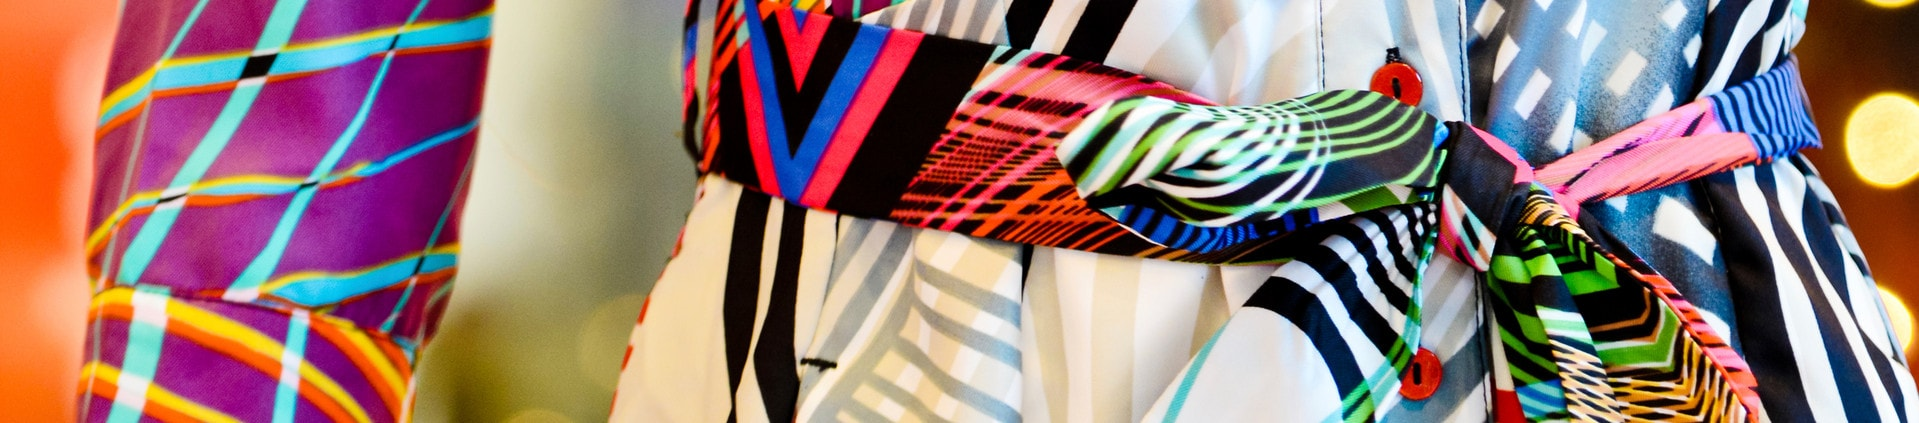 Custom Print or Sell your own designs online Fabrics + Wallpapers + Gift Wrap Printed just for you!